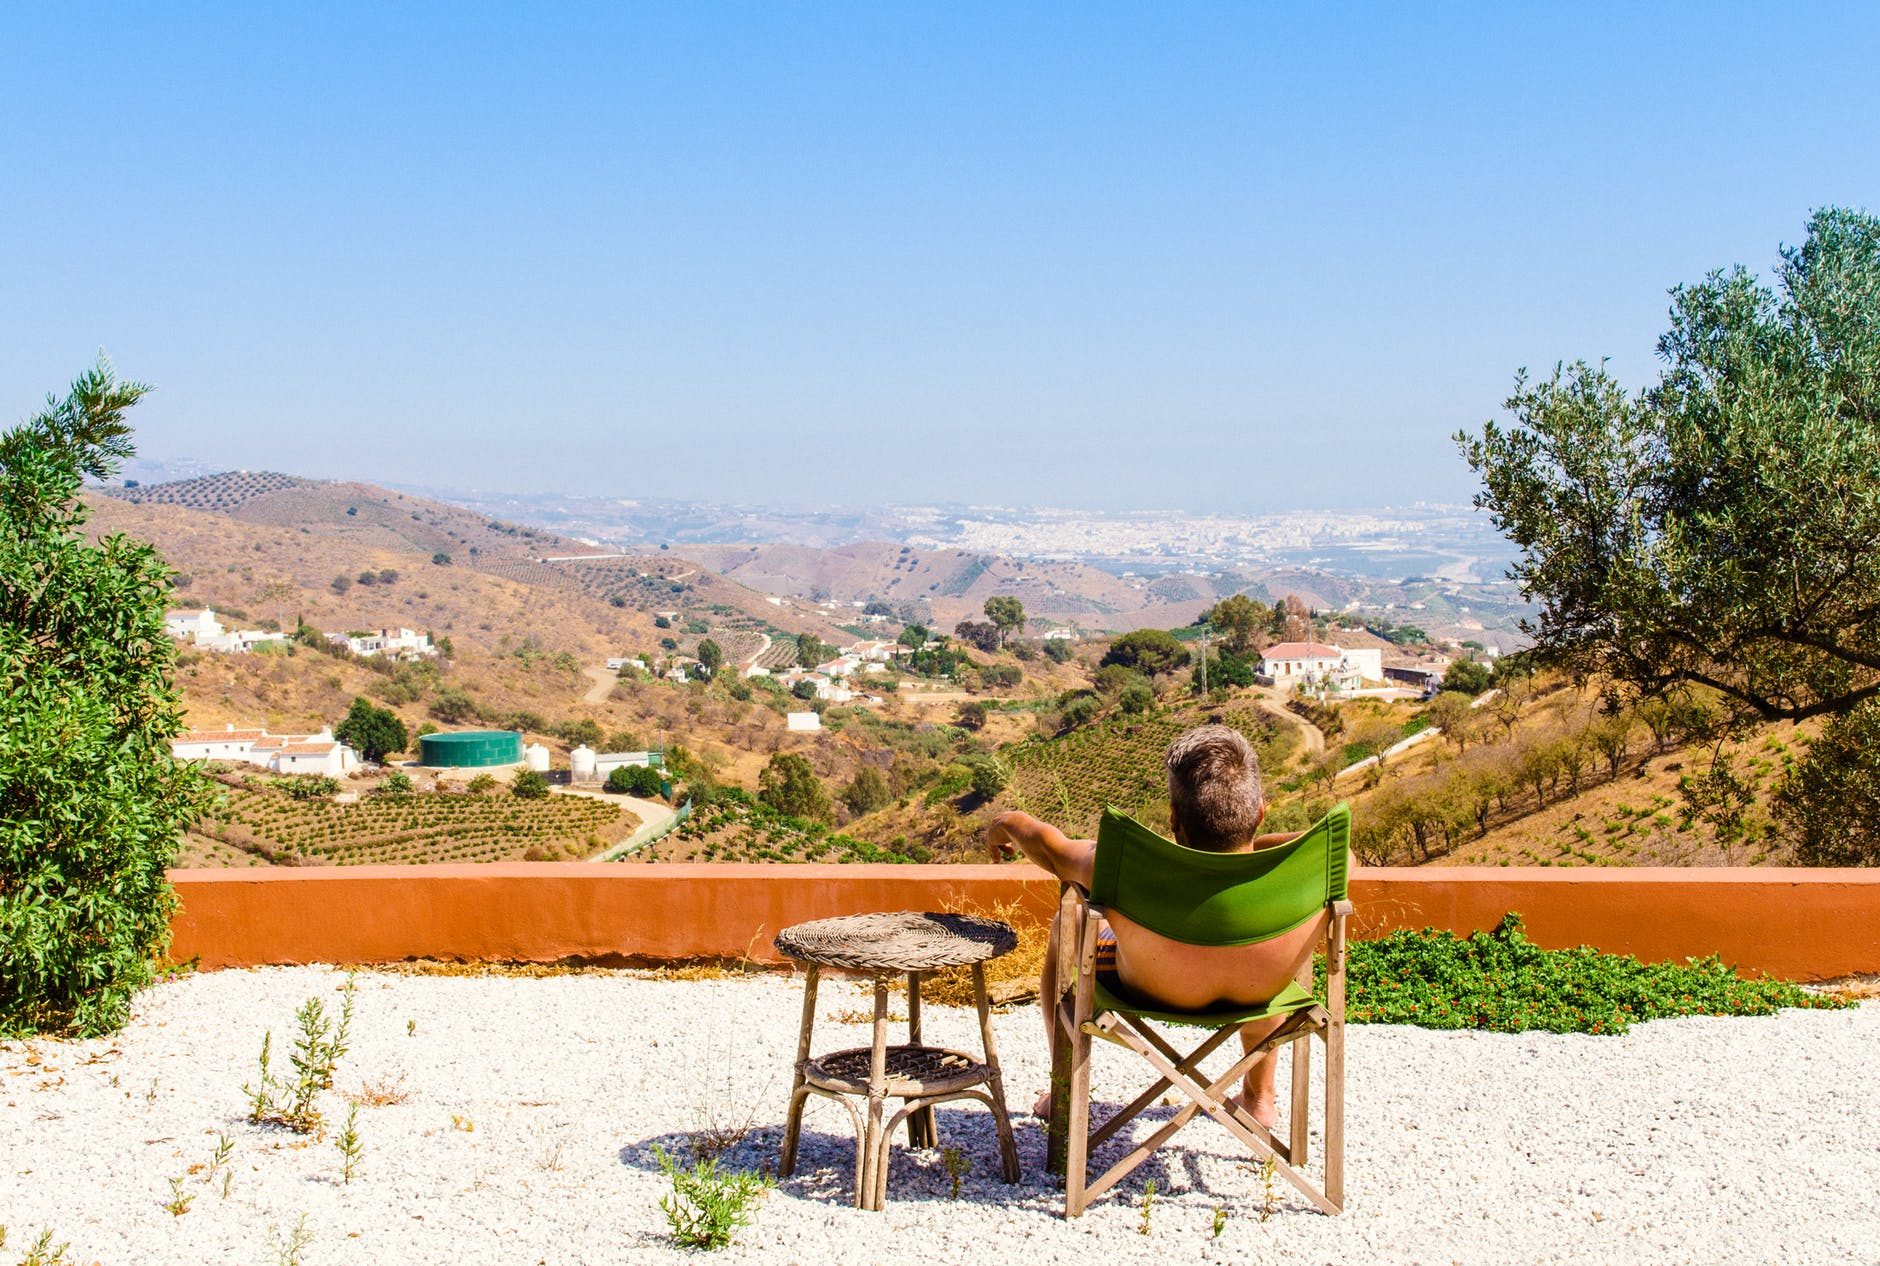 man sitting on green chair near trees and mountain under blue sky at daytime